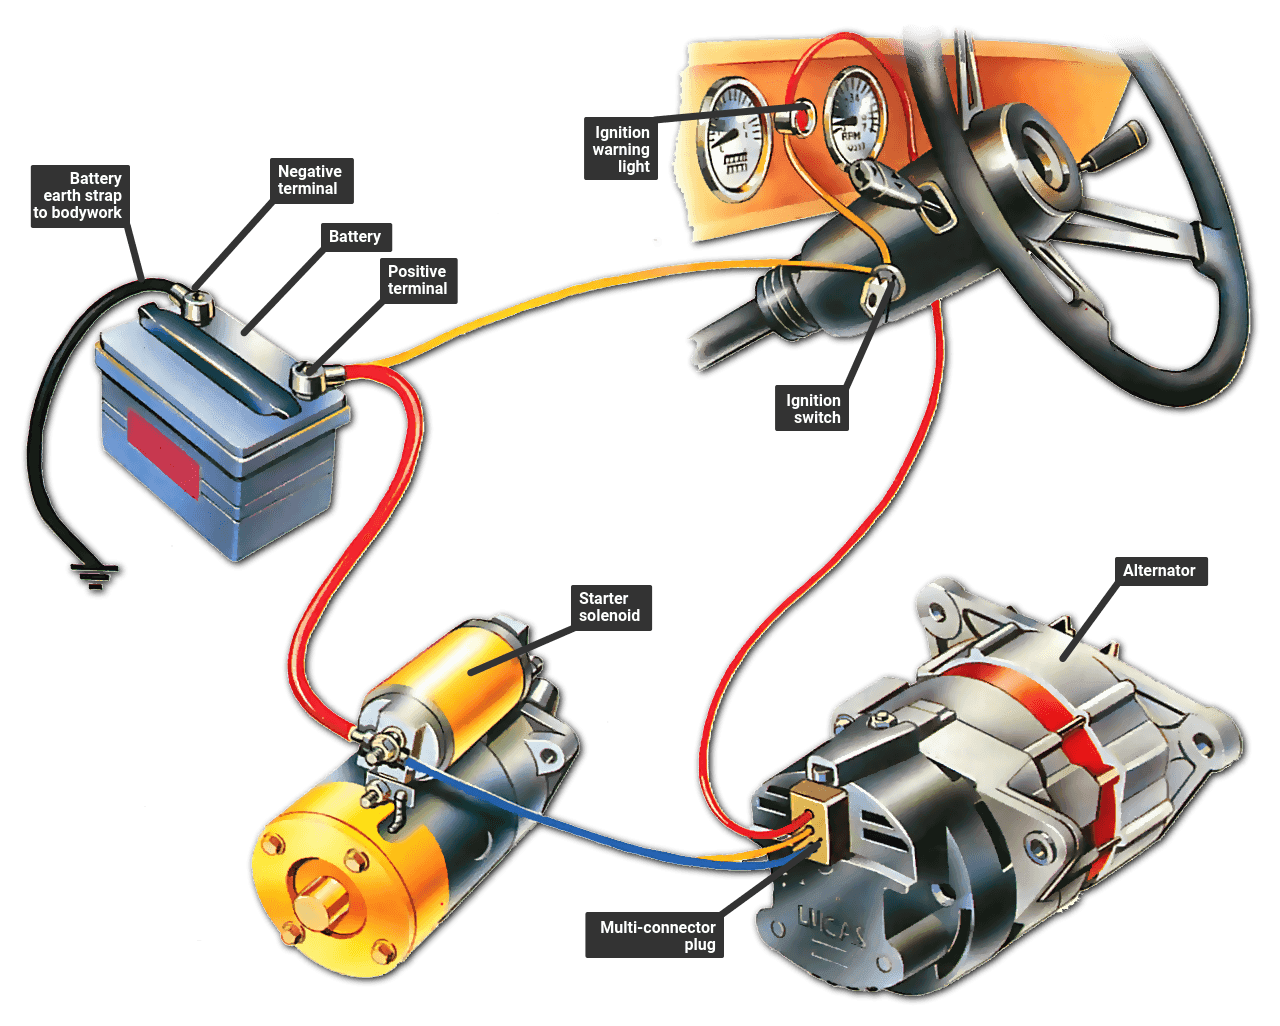 1999 Silverado Fuel System Diagram Simple Guide About Wiring Tahoe Brake Light Troubleshooting The Ignition Warning How A Car Works